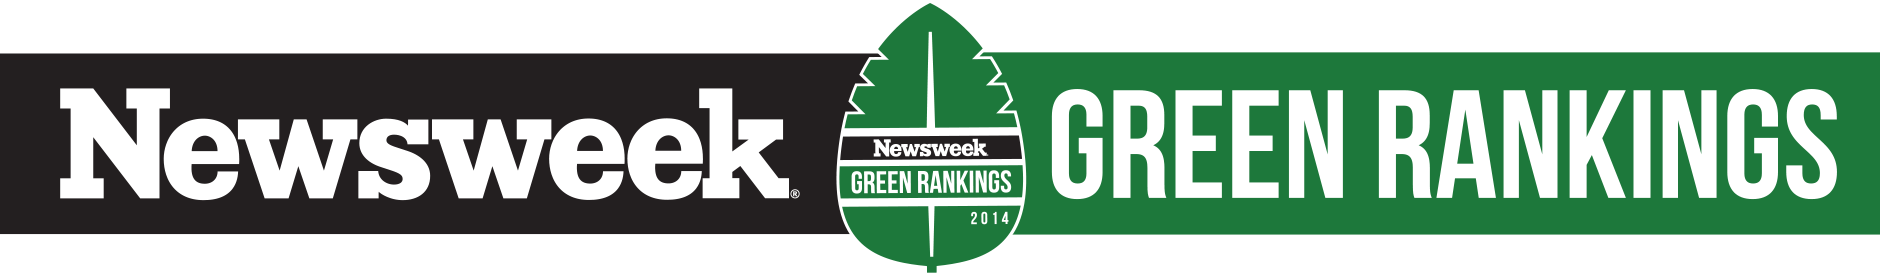 green-rankings-logo-hi